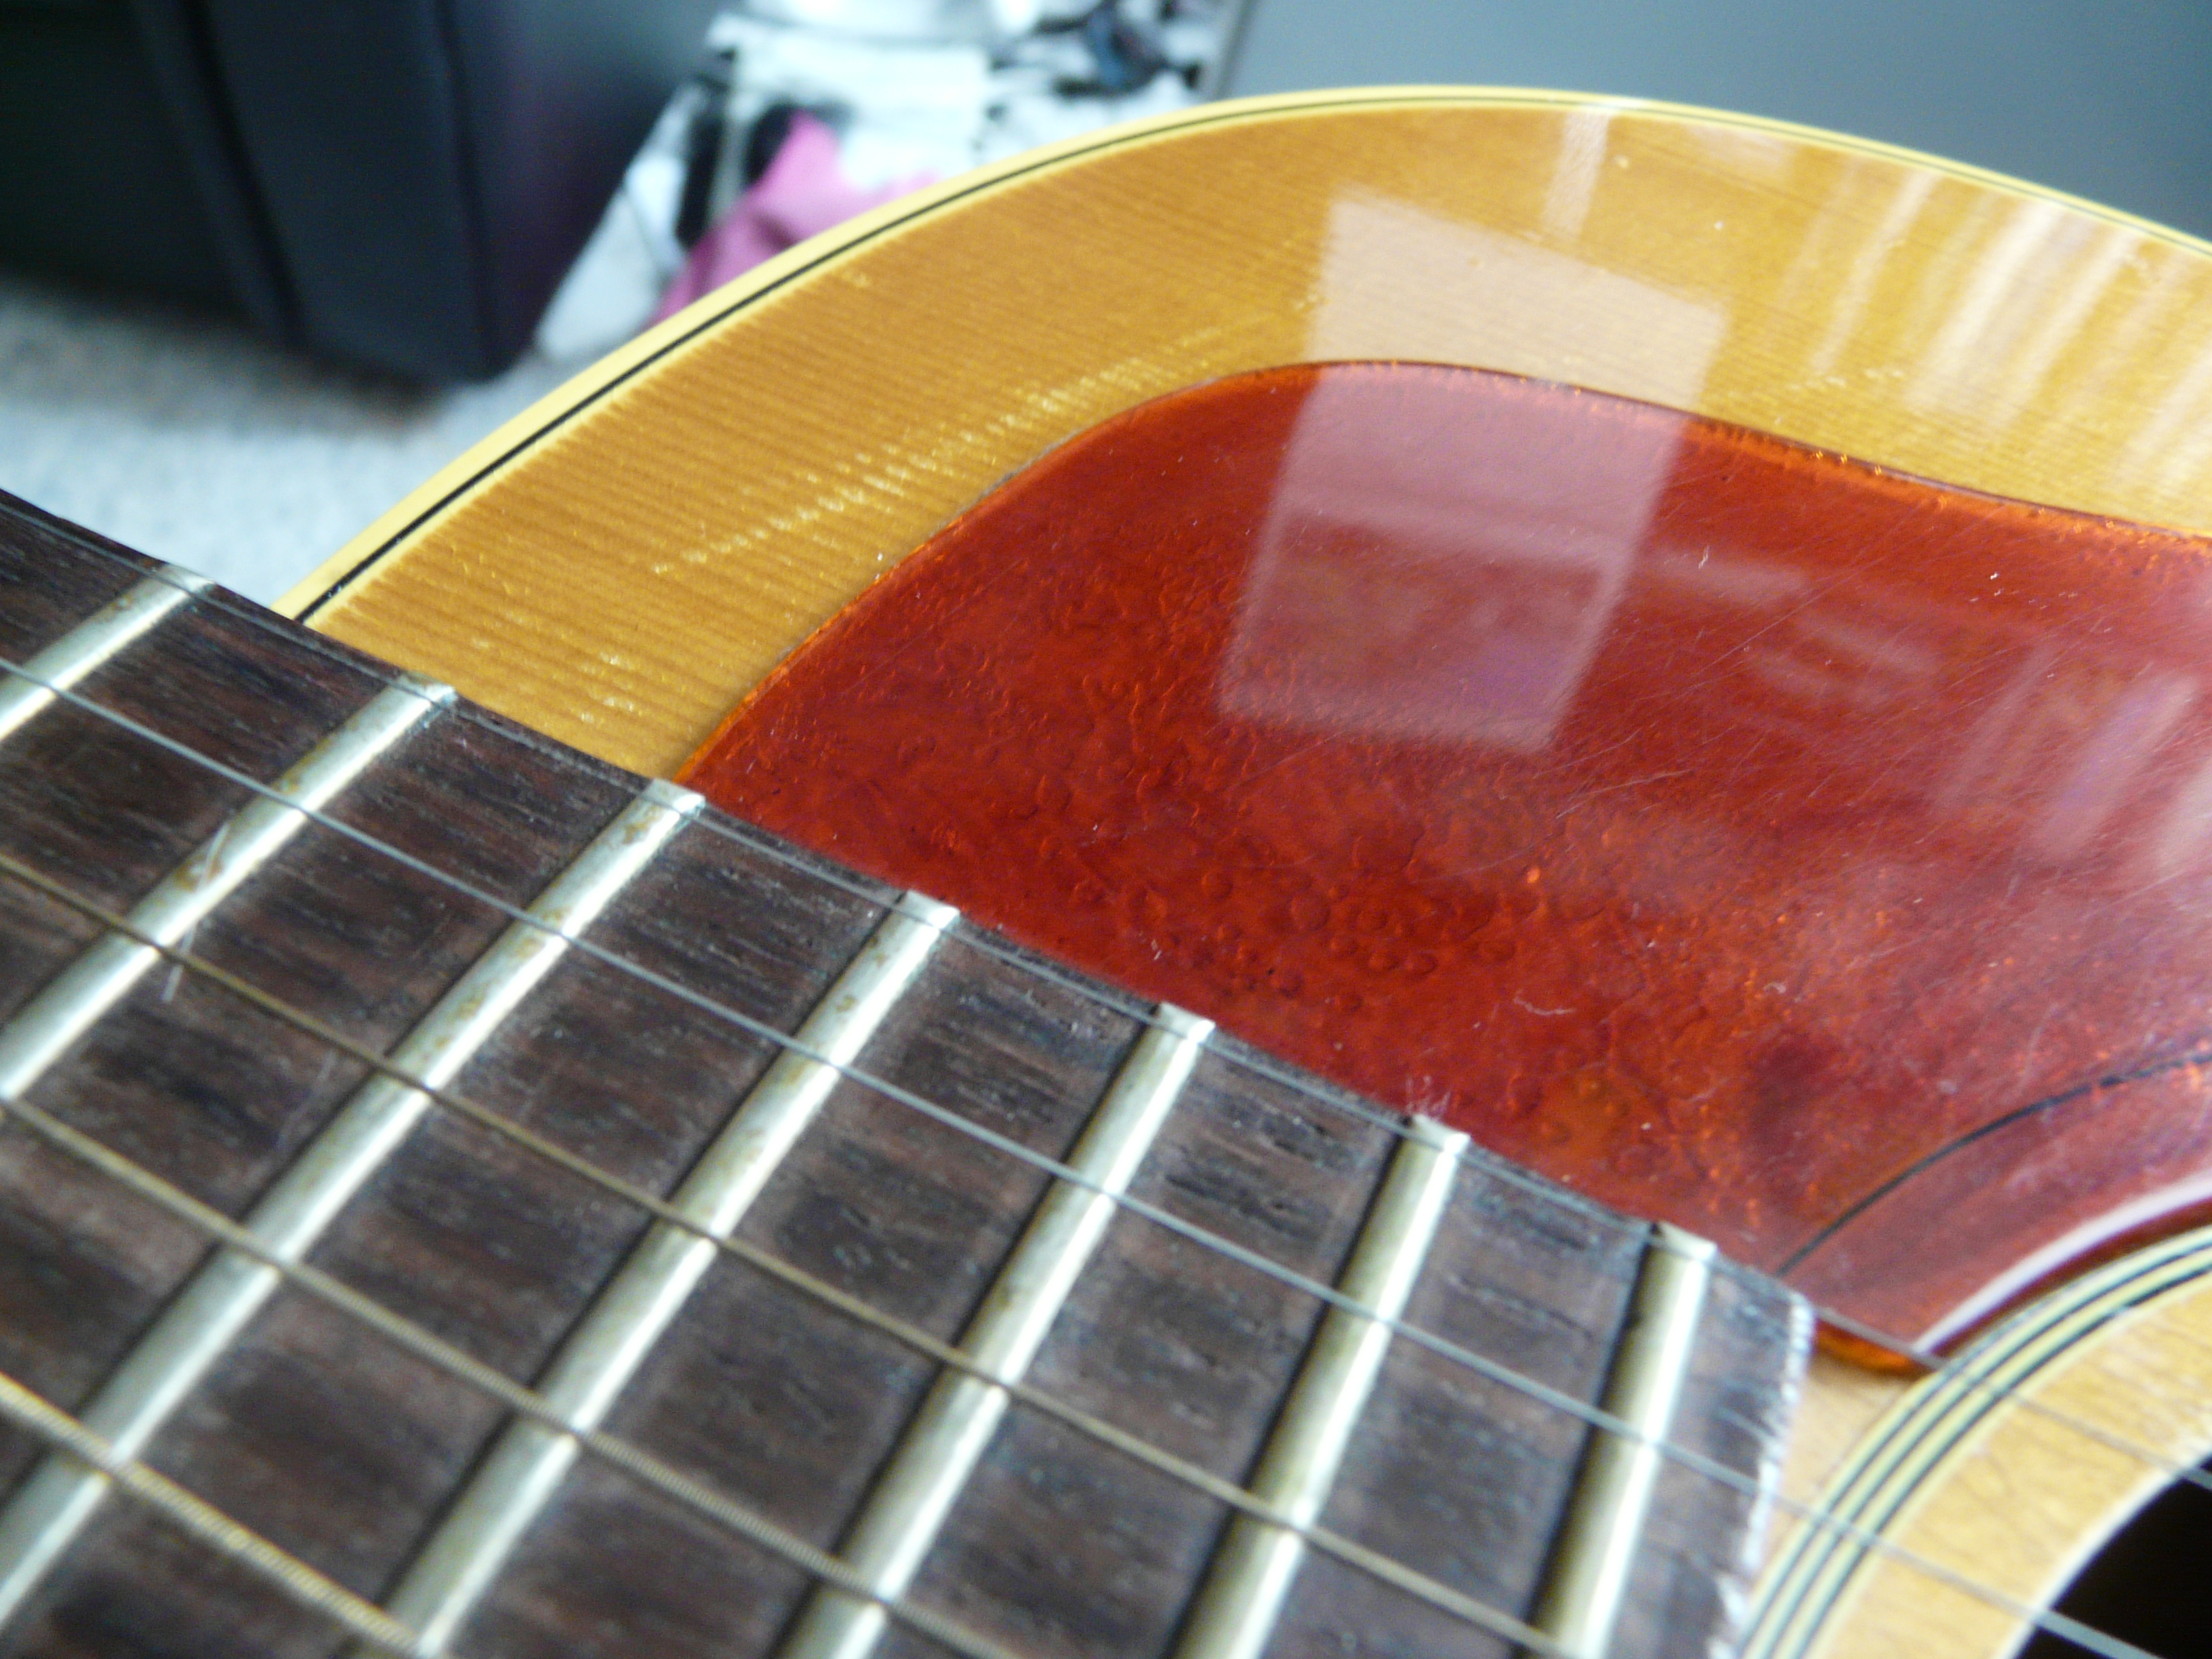 file gibson j 50 sn pickguard scratches photo by henry